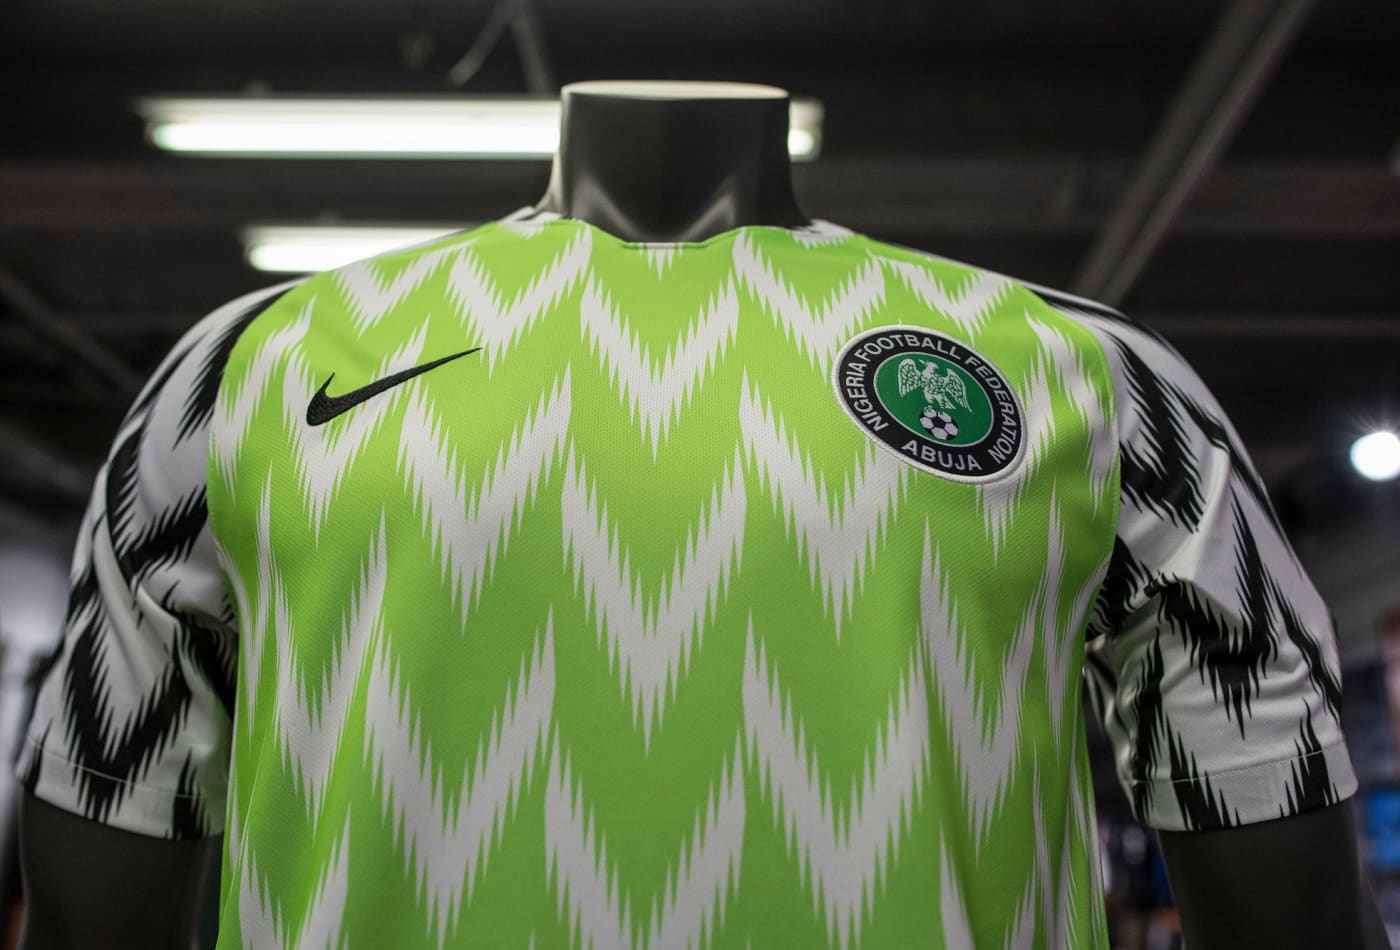 16da3488a49 The Nigeria Super Eagles jersey for the 2018 World Cup in Russia has been  hugely popular, both domestically and internationally, with fans scrambling  to get ...